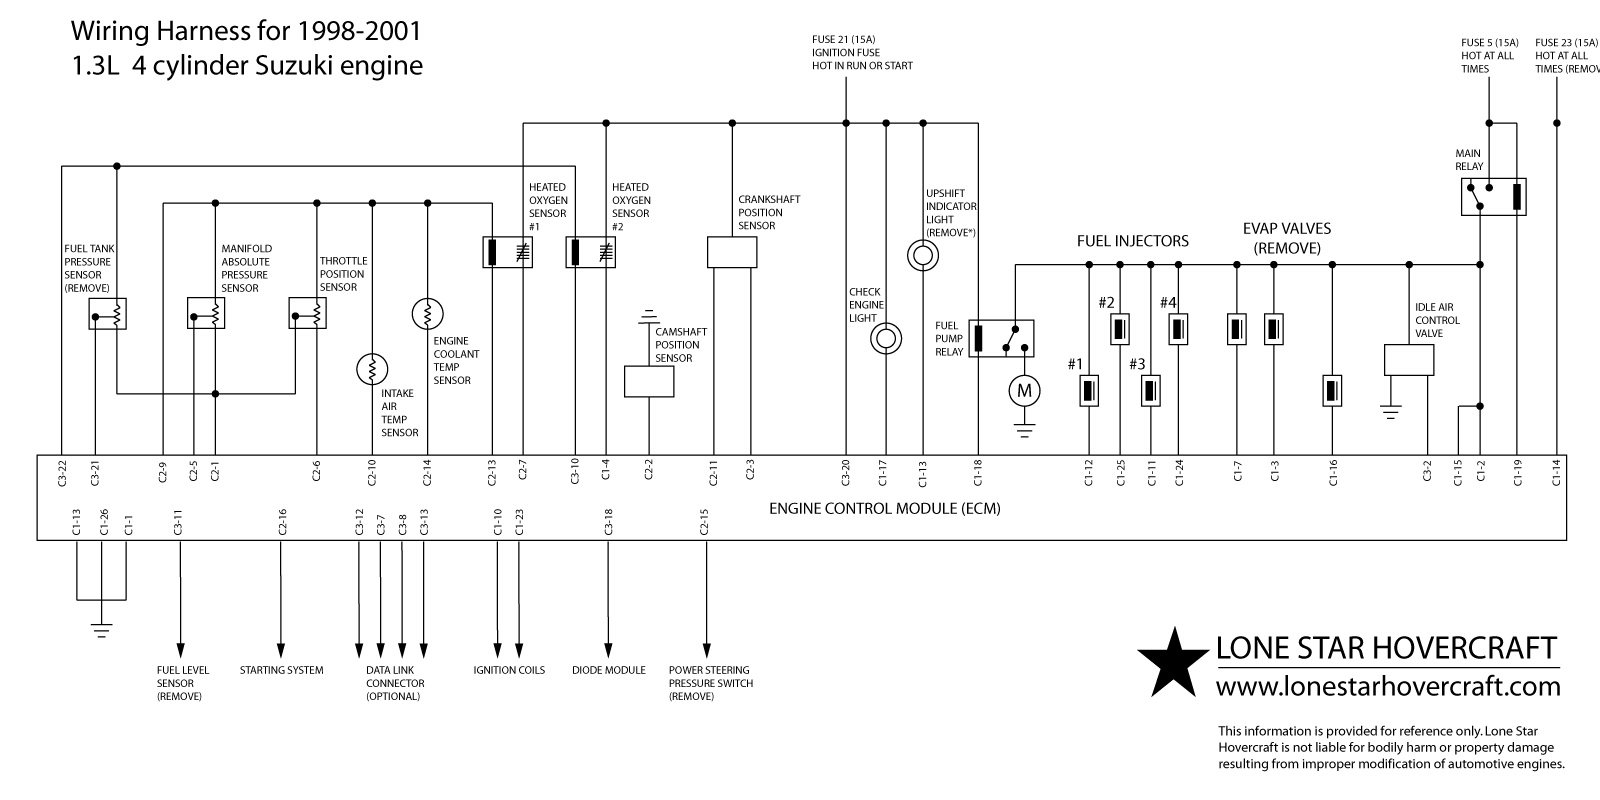 Wiring_Diagram_ECM_Connectors geo suzuki wiring 1998 chevy metro wiring diagram at mifinder.co